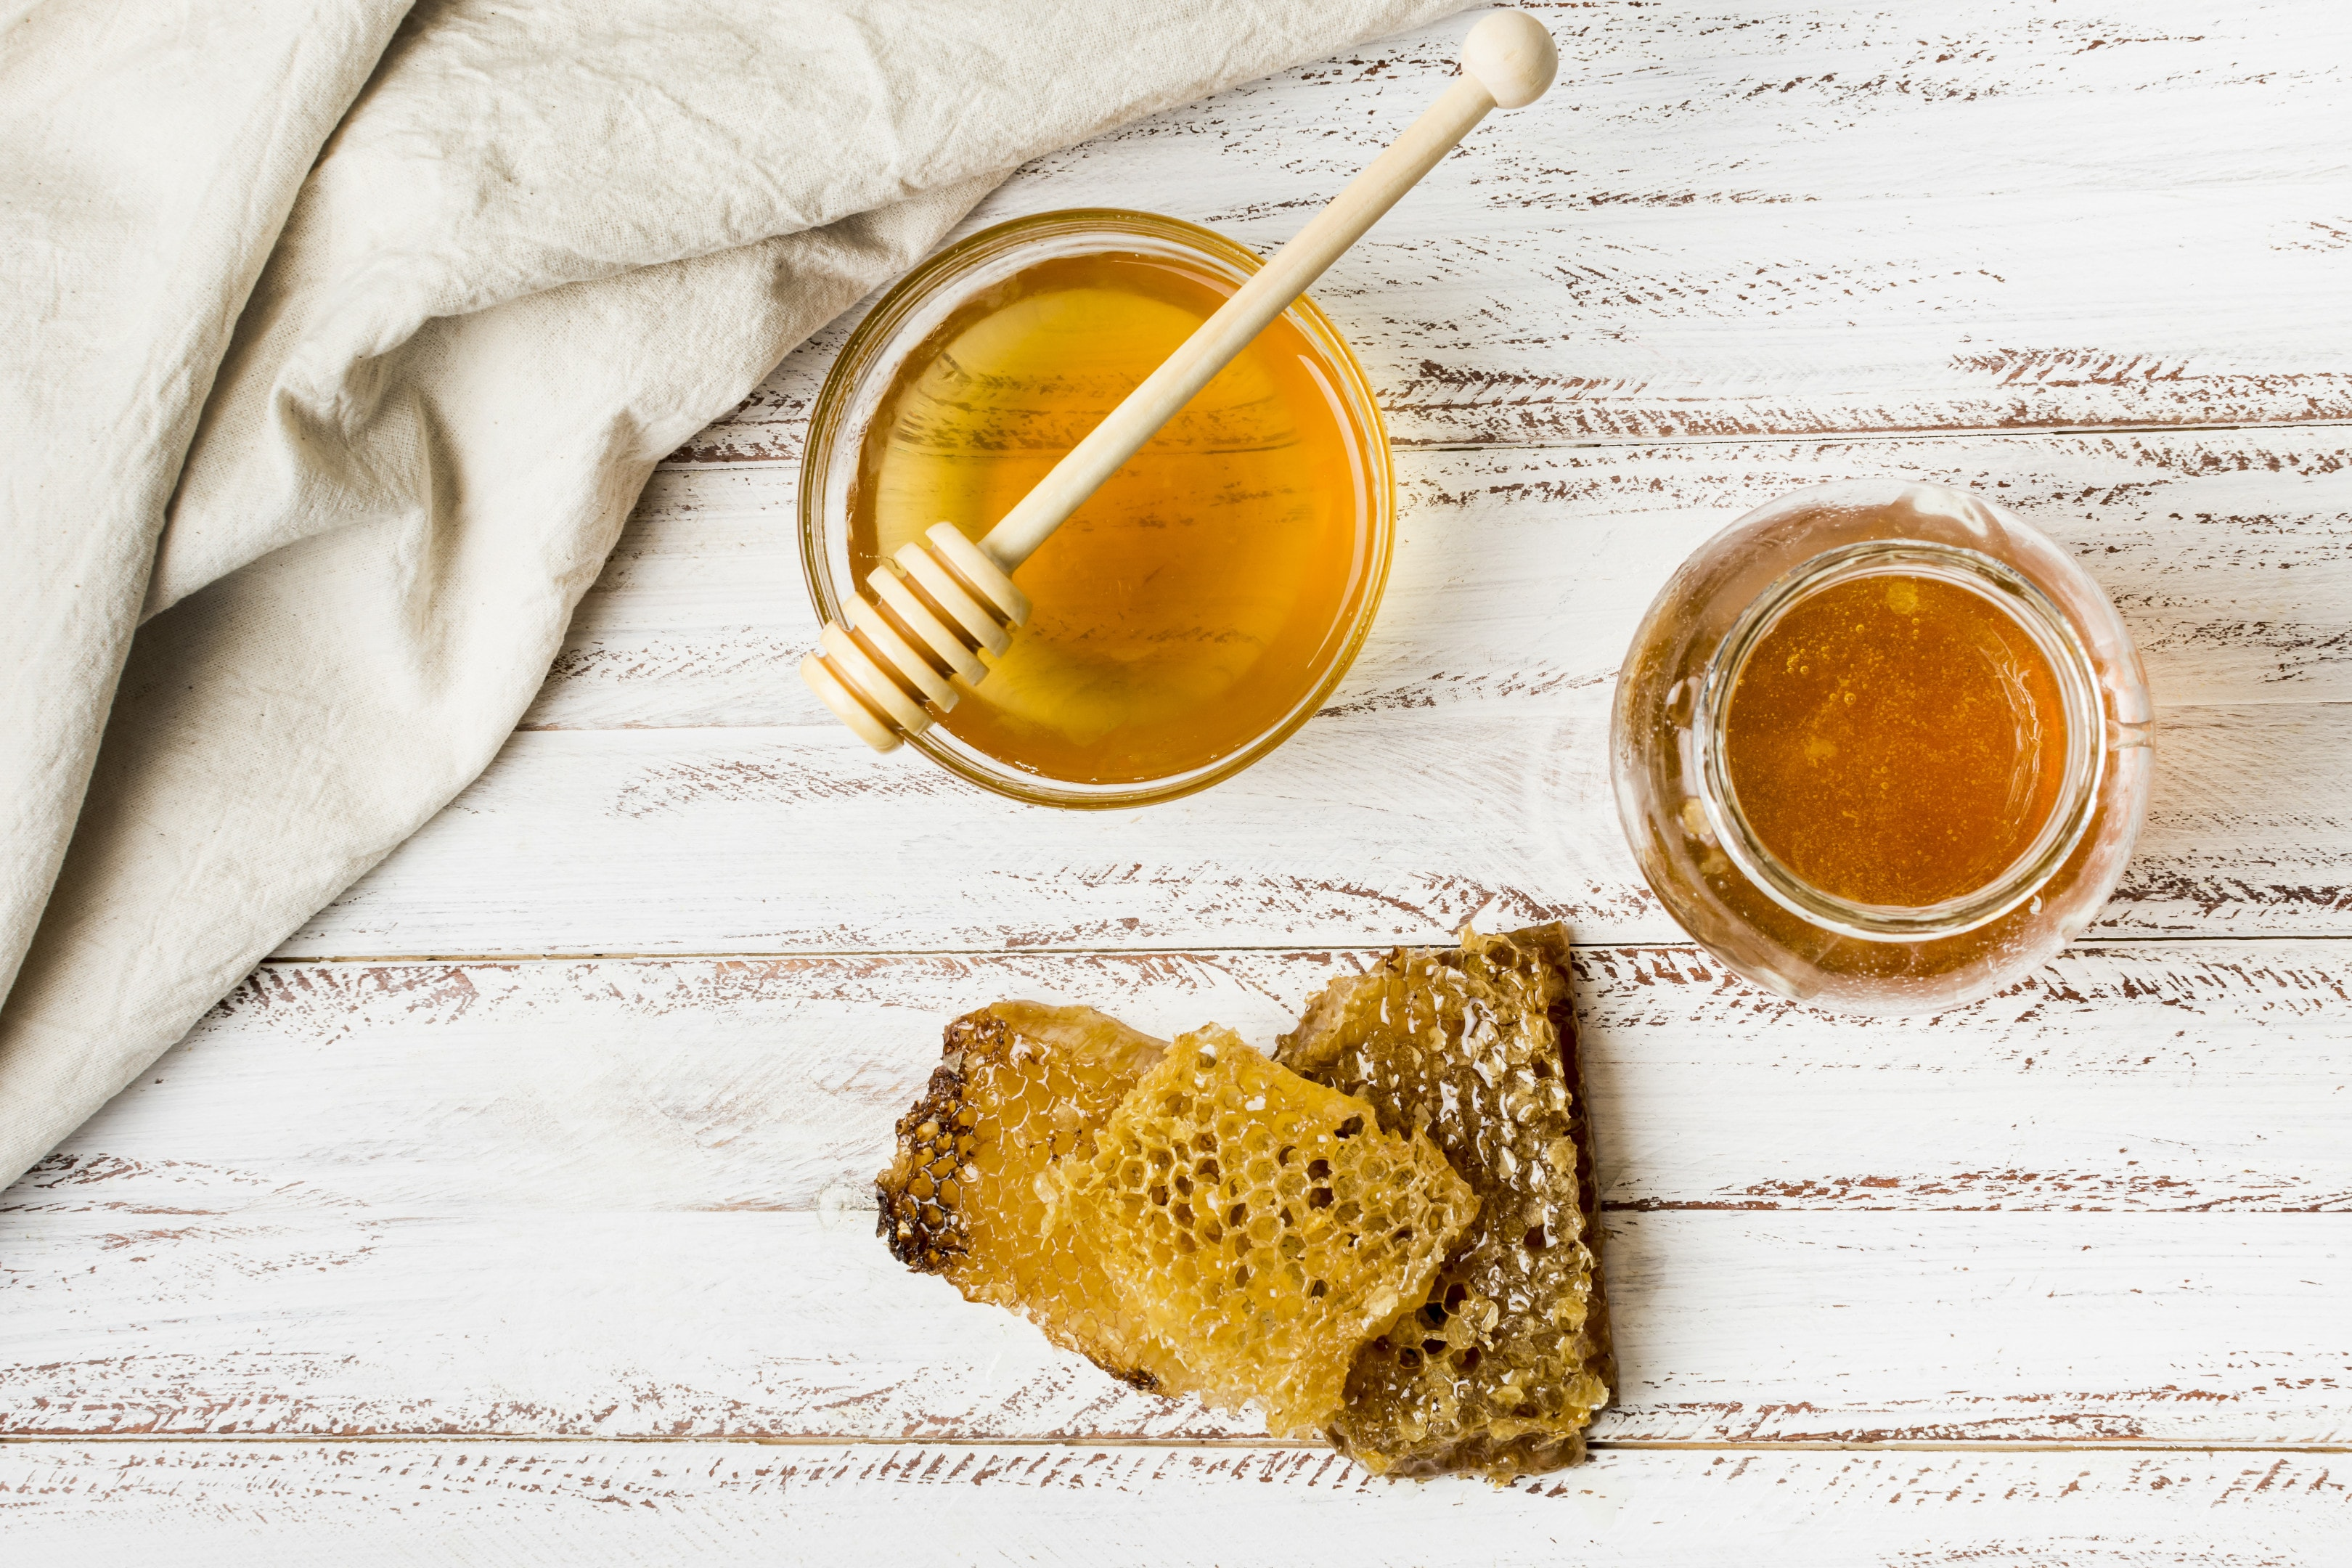 Honey jars with honeycomb on wooden table